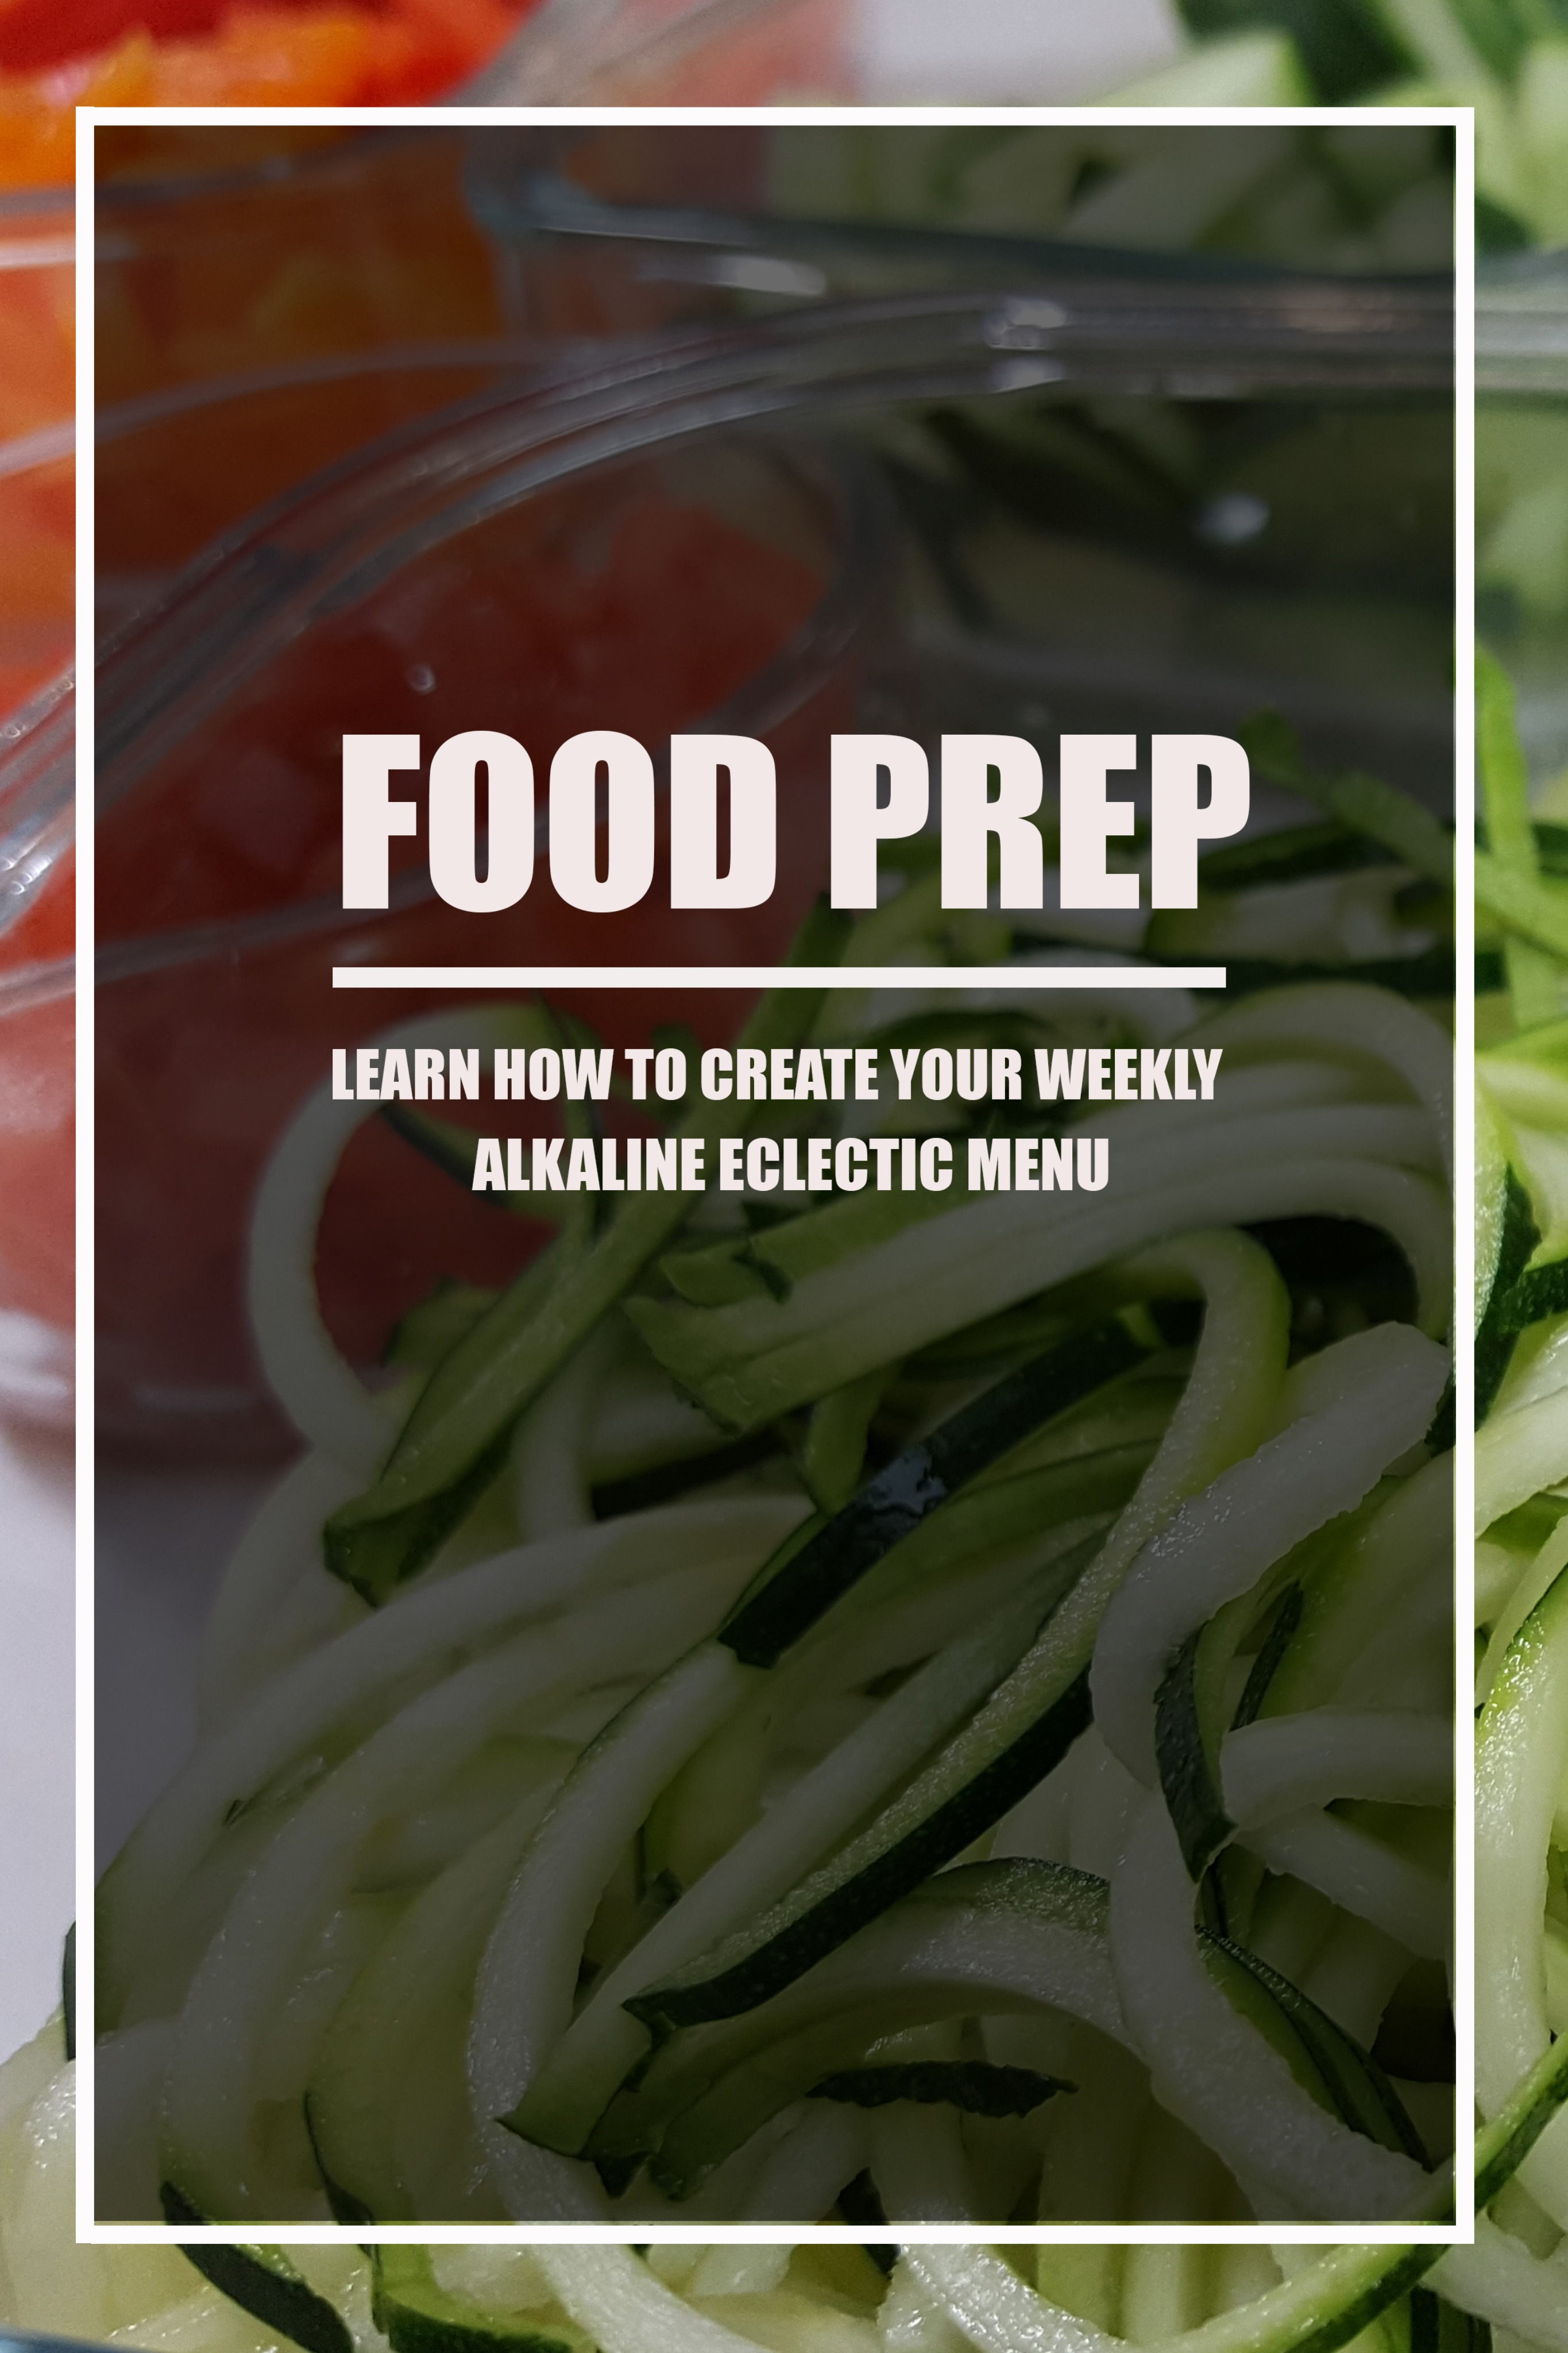 BEYOND VEGAN | FOOD PREP EBOOK + FREE VIDEO